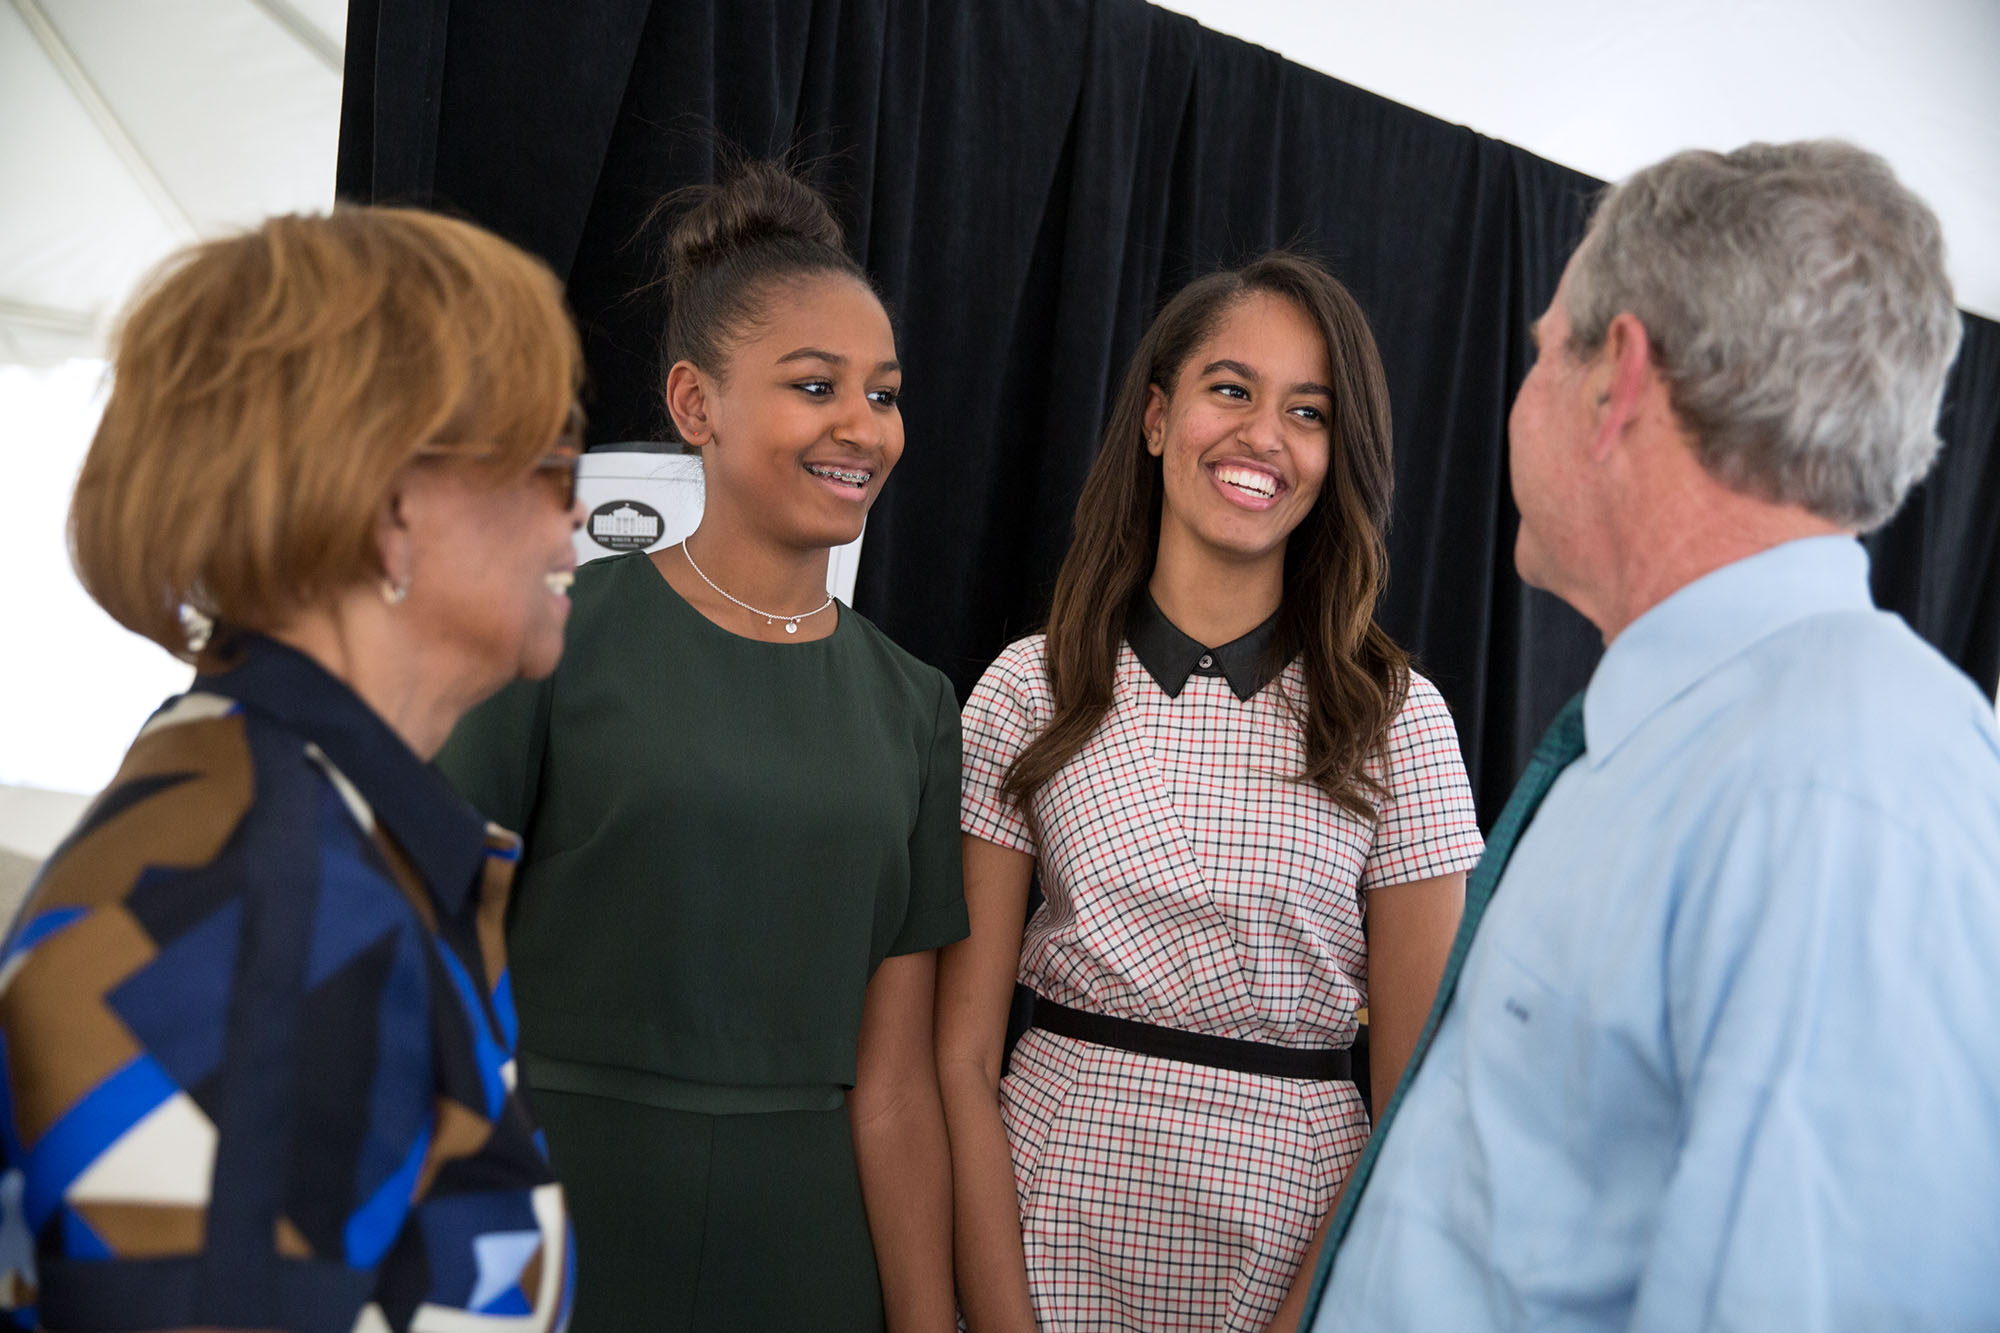 Backstage, former President Bush talks with Sasha and Malia Obama and Marian Robinson. (Official White House Photo by Pete Souza)